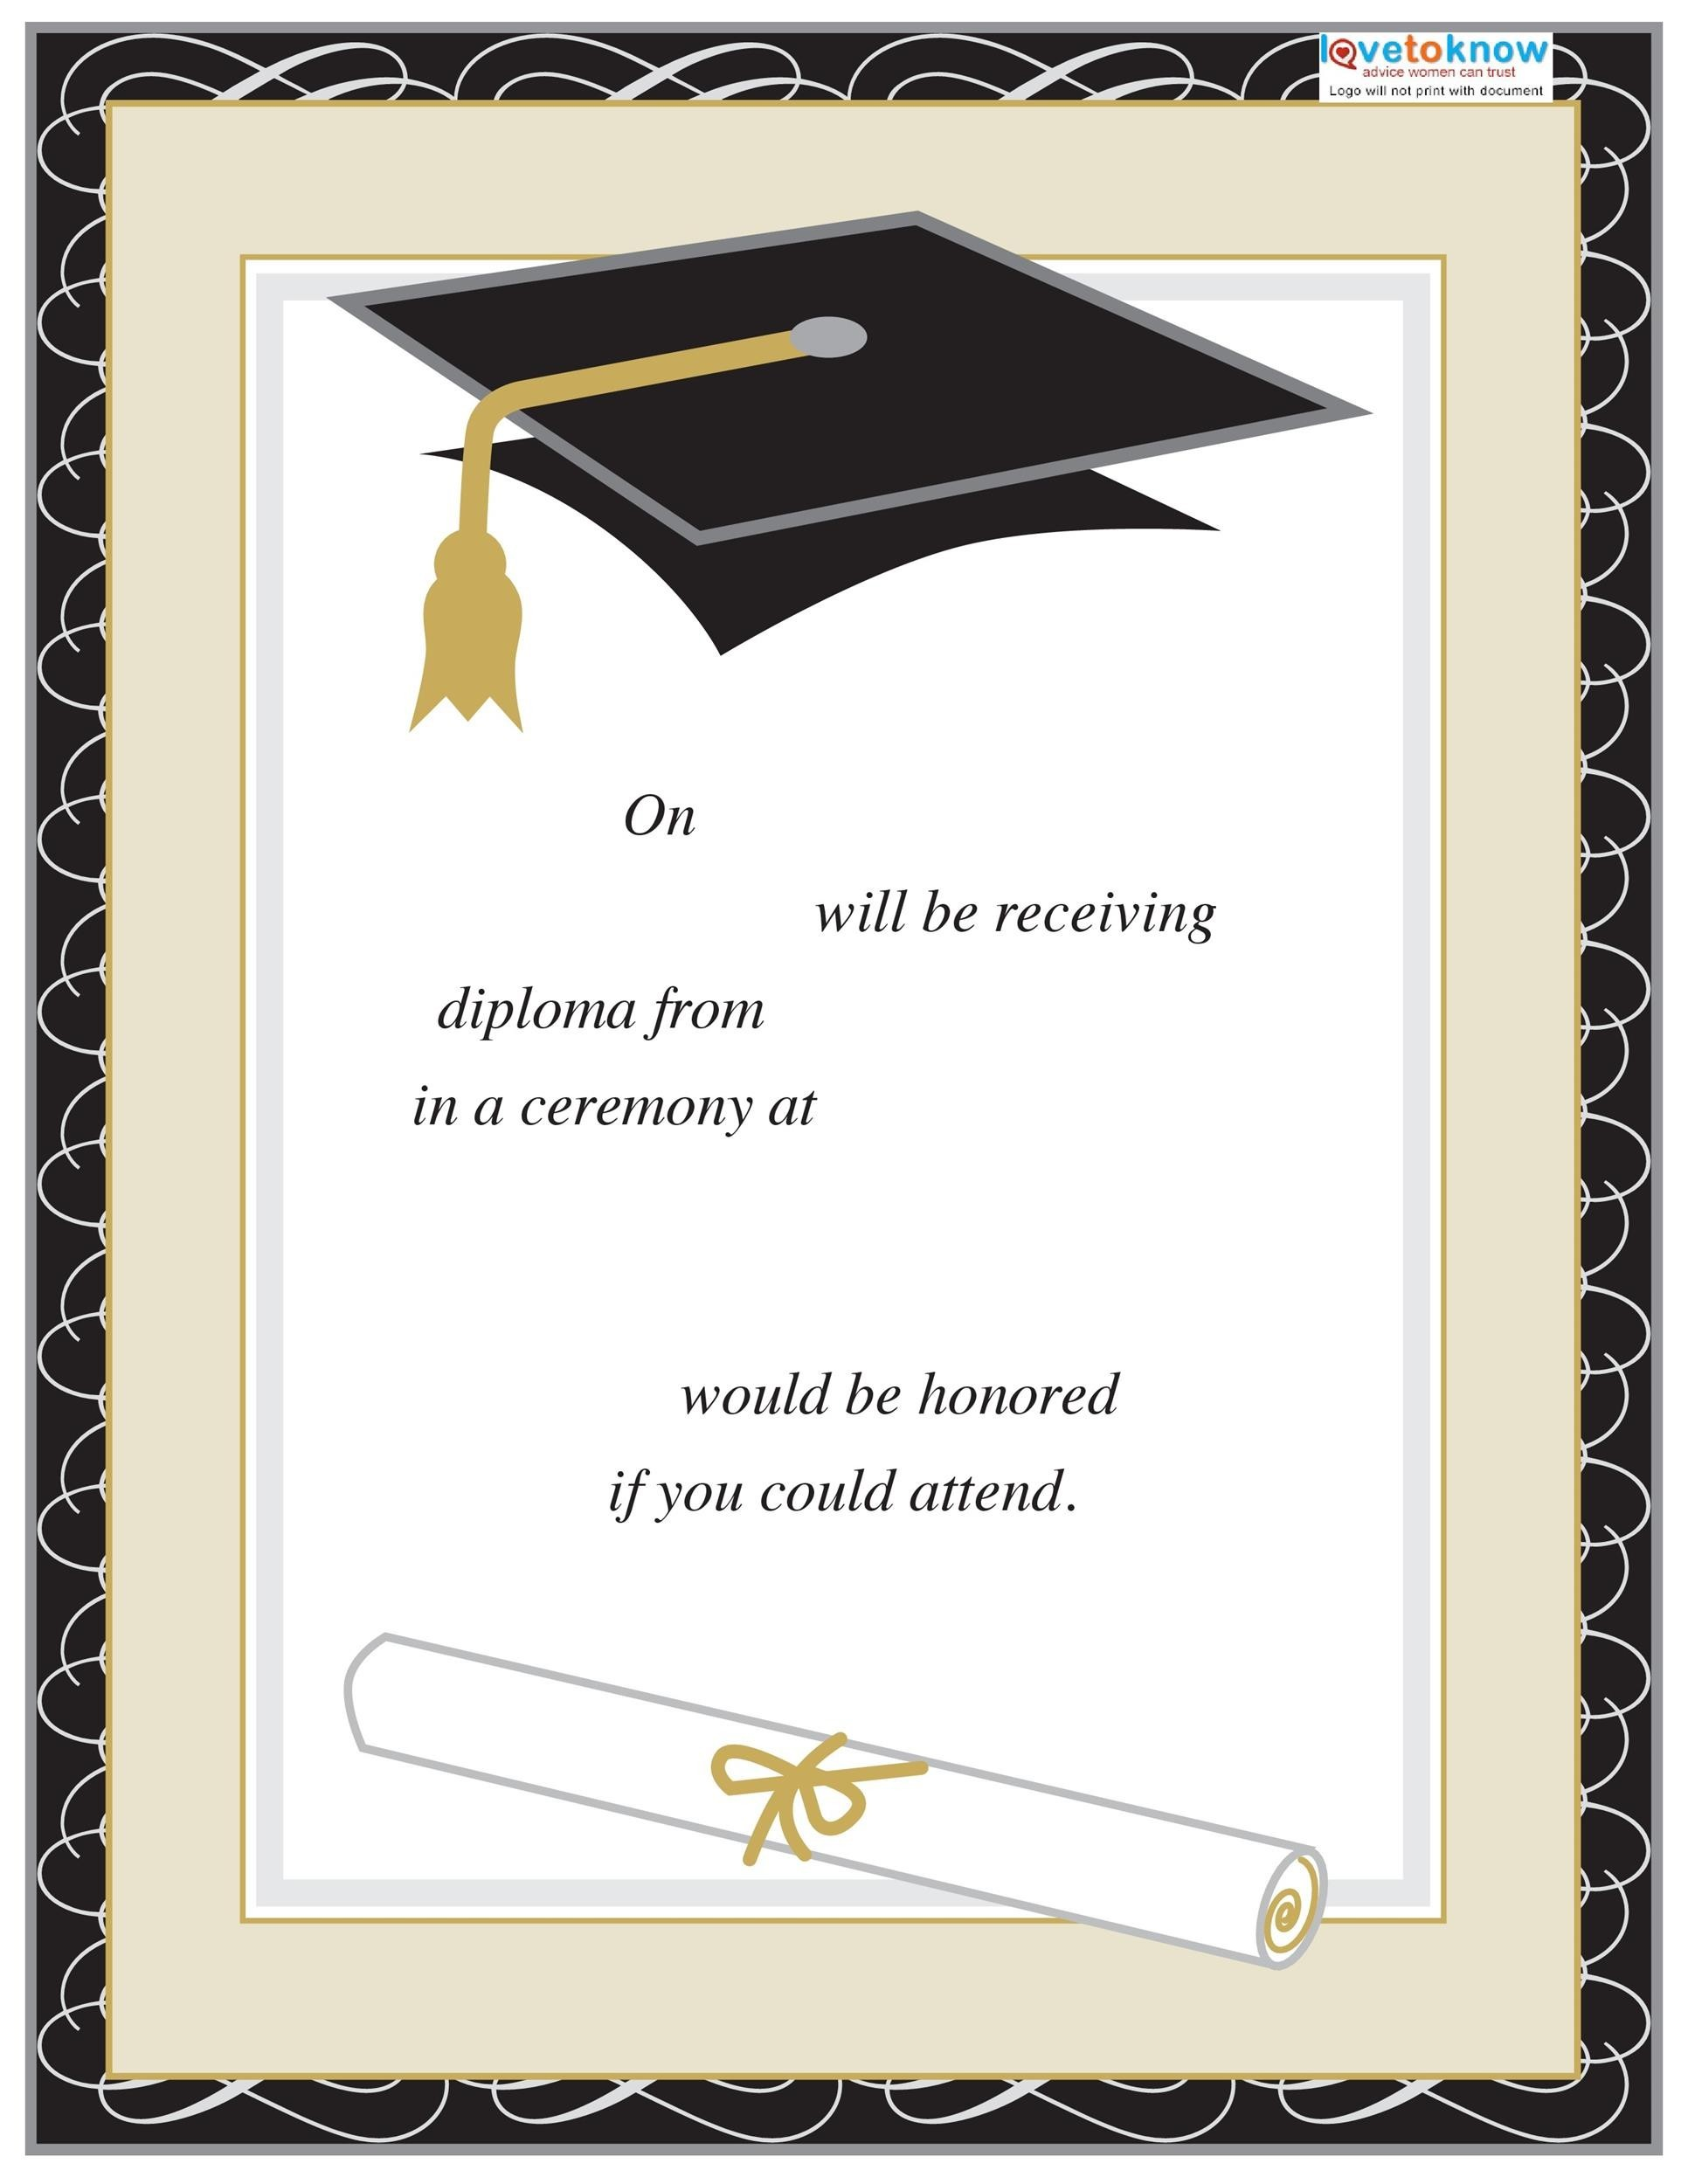 Graduation invitations samples acurnamedia graduation invitations samples spiritdancerdesigns Image collections